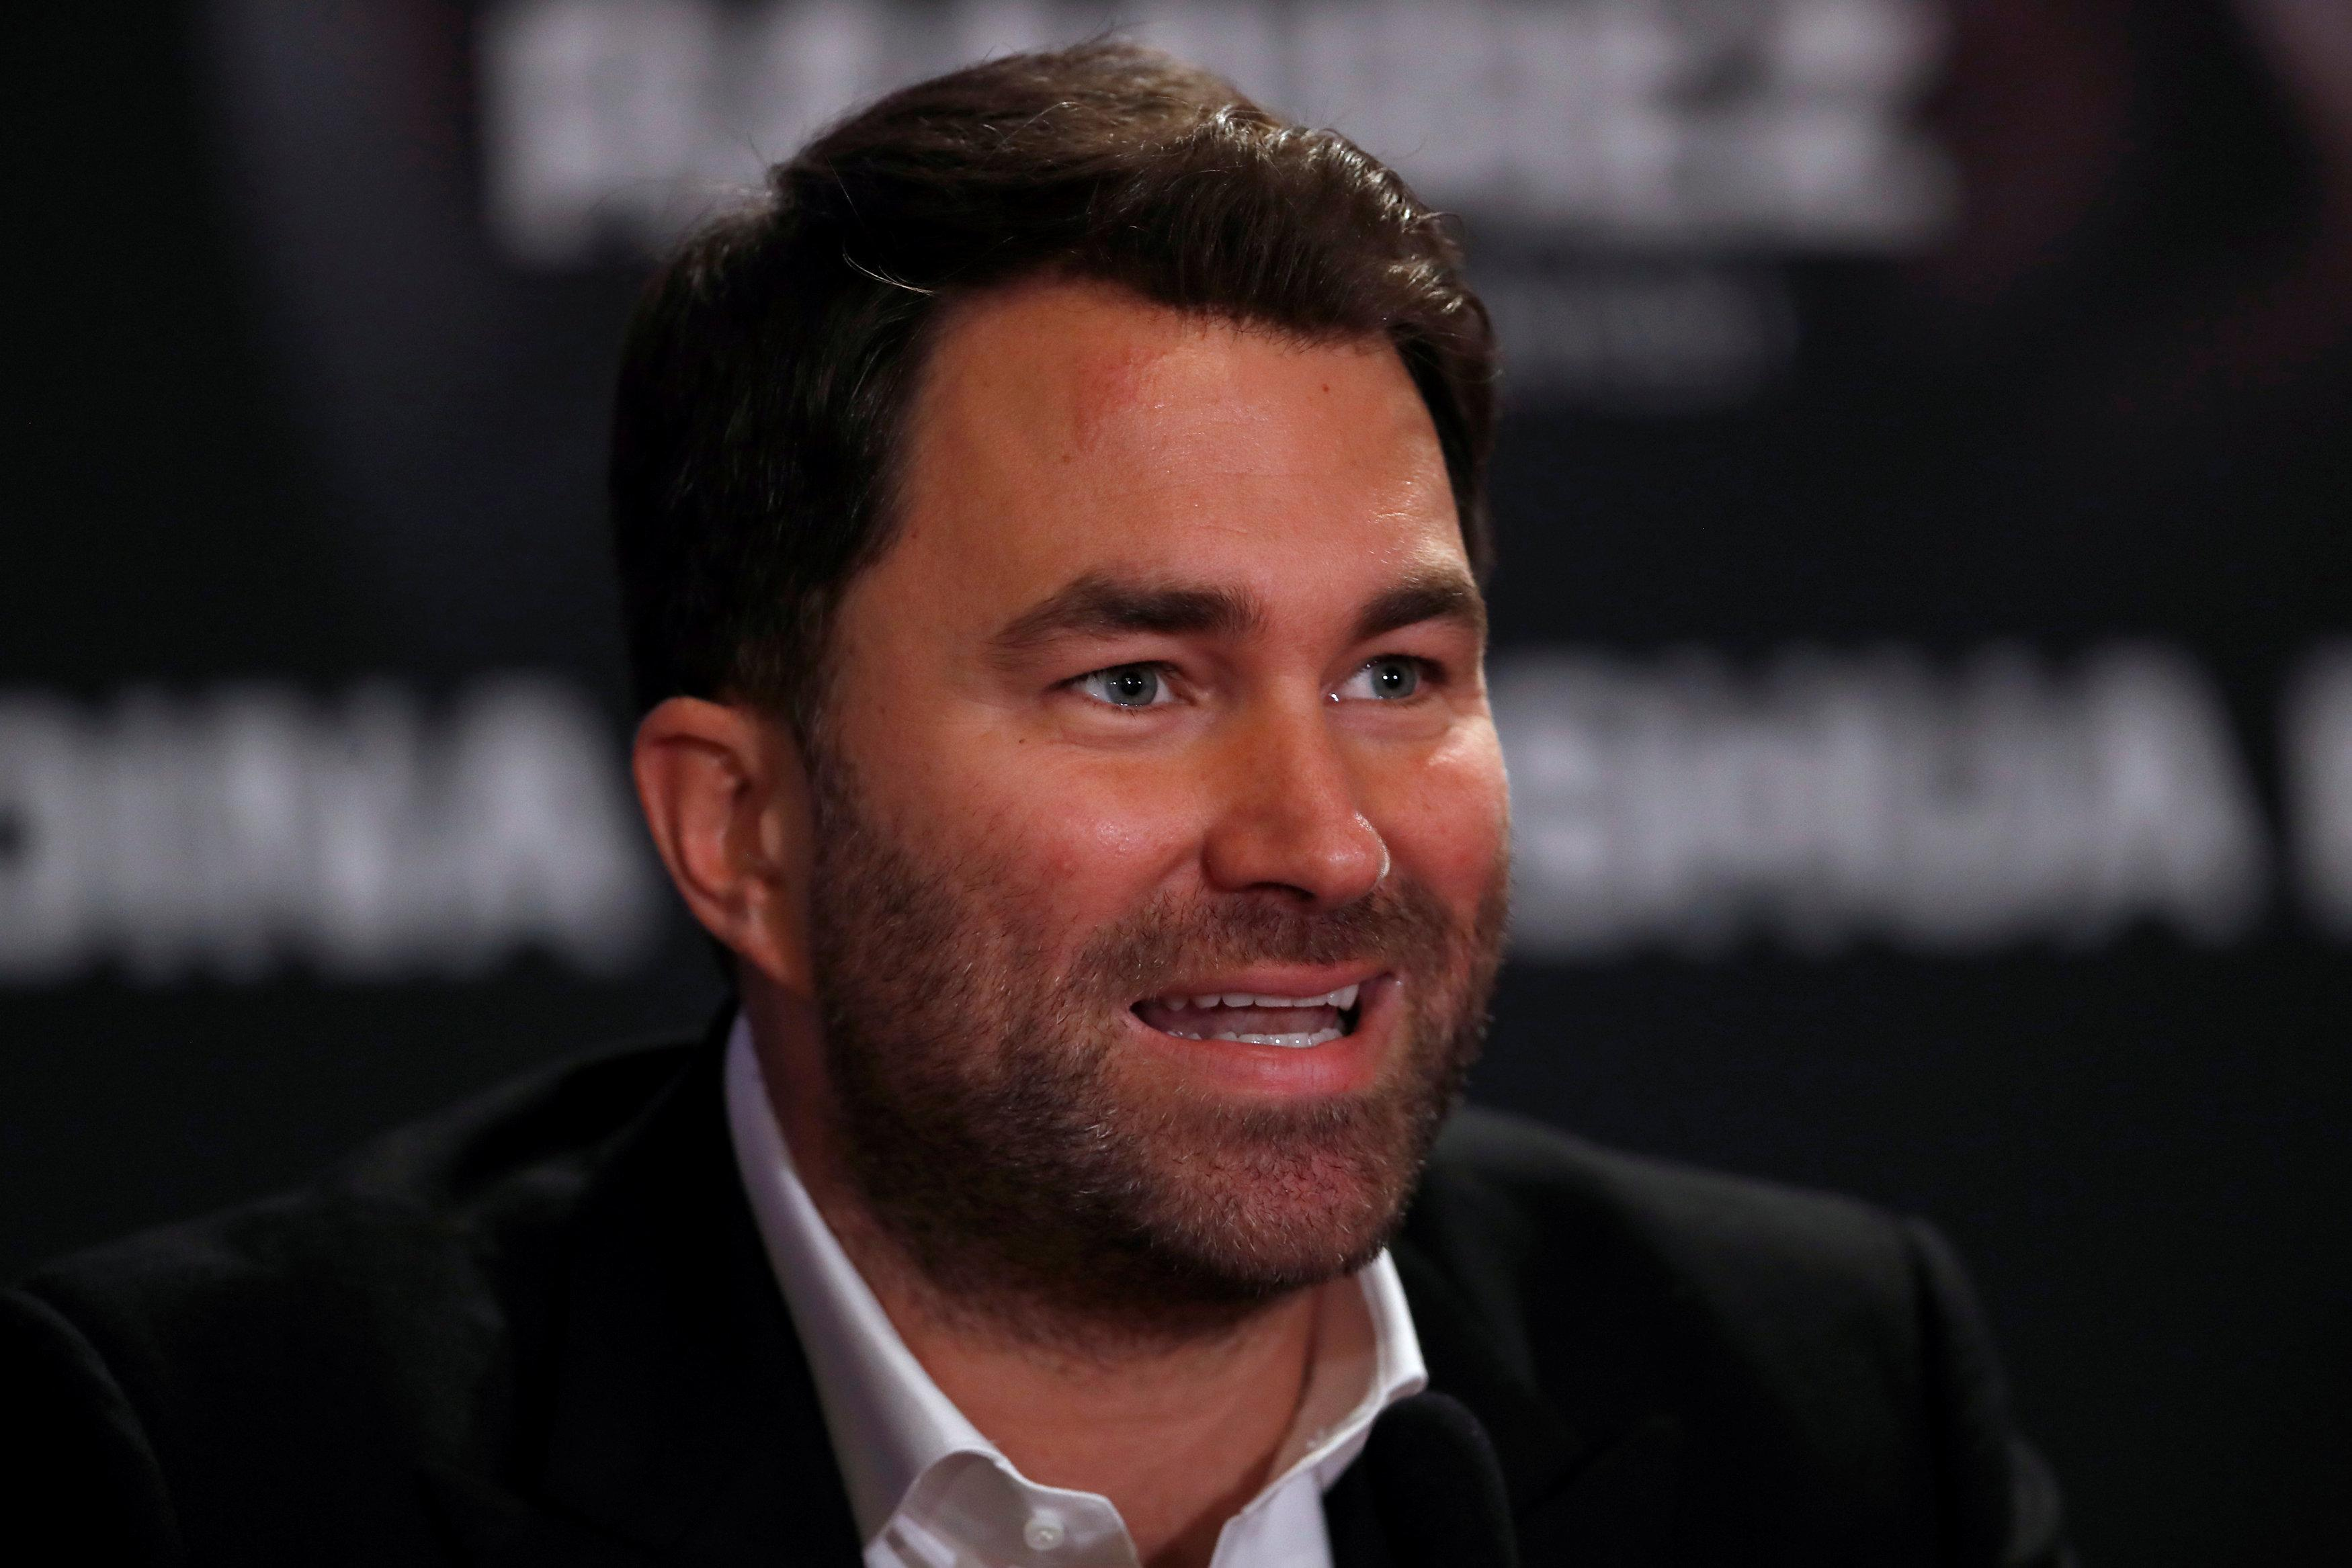 Eddie Hearn refused to bow to Wilder's demands of a 50/50 split for the £75m bout